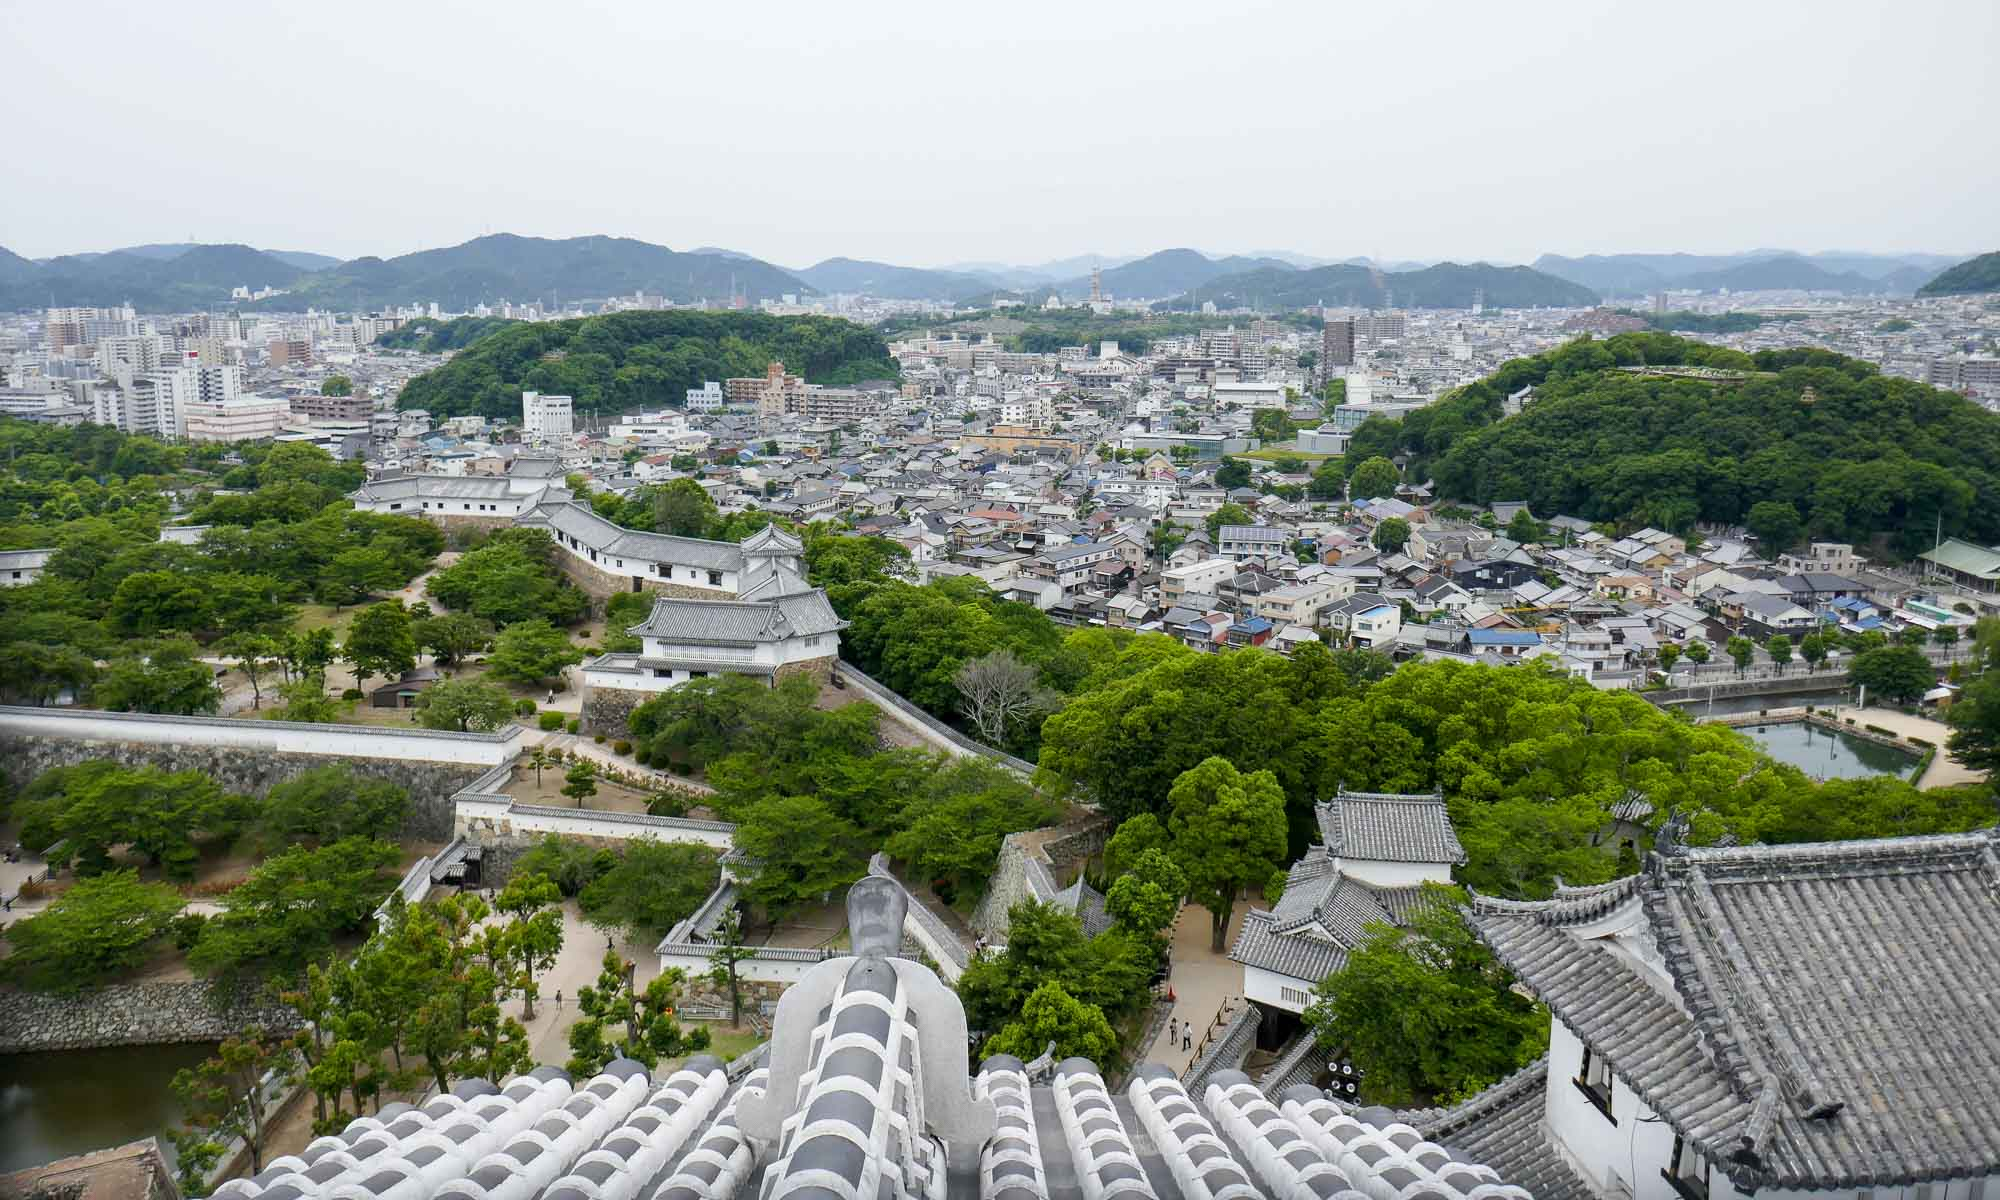 View of Himeji from the Castle